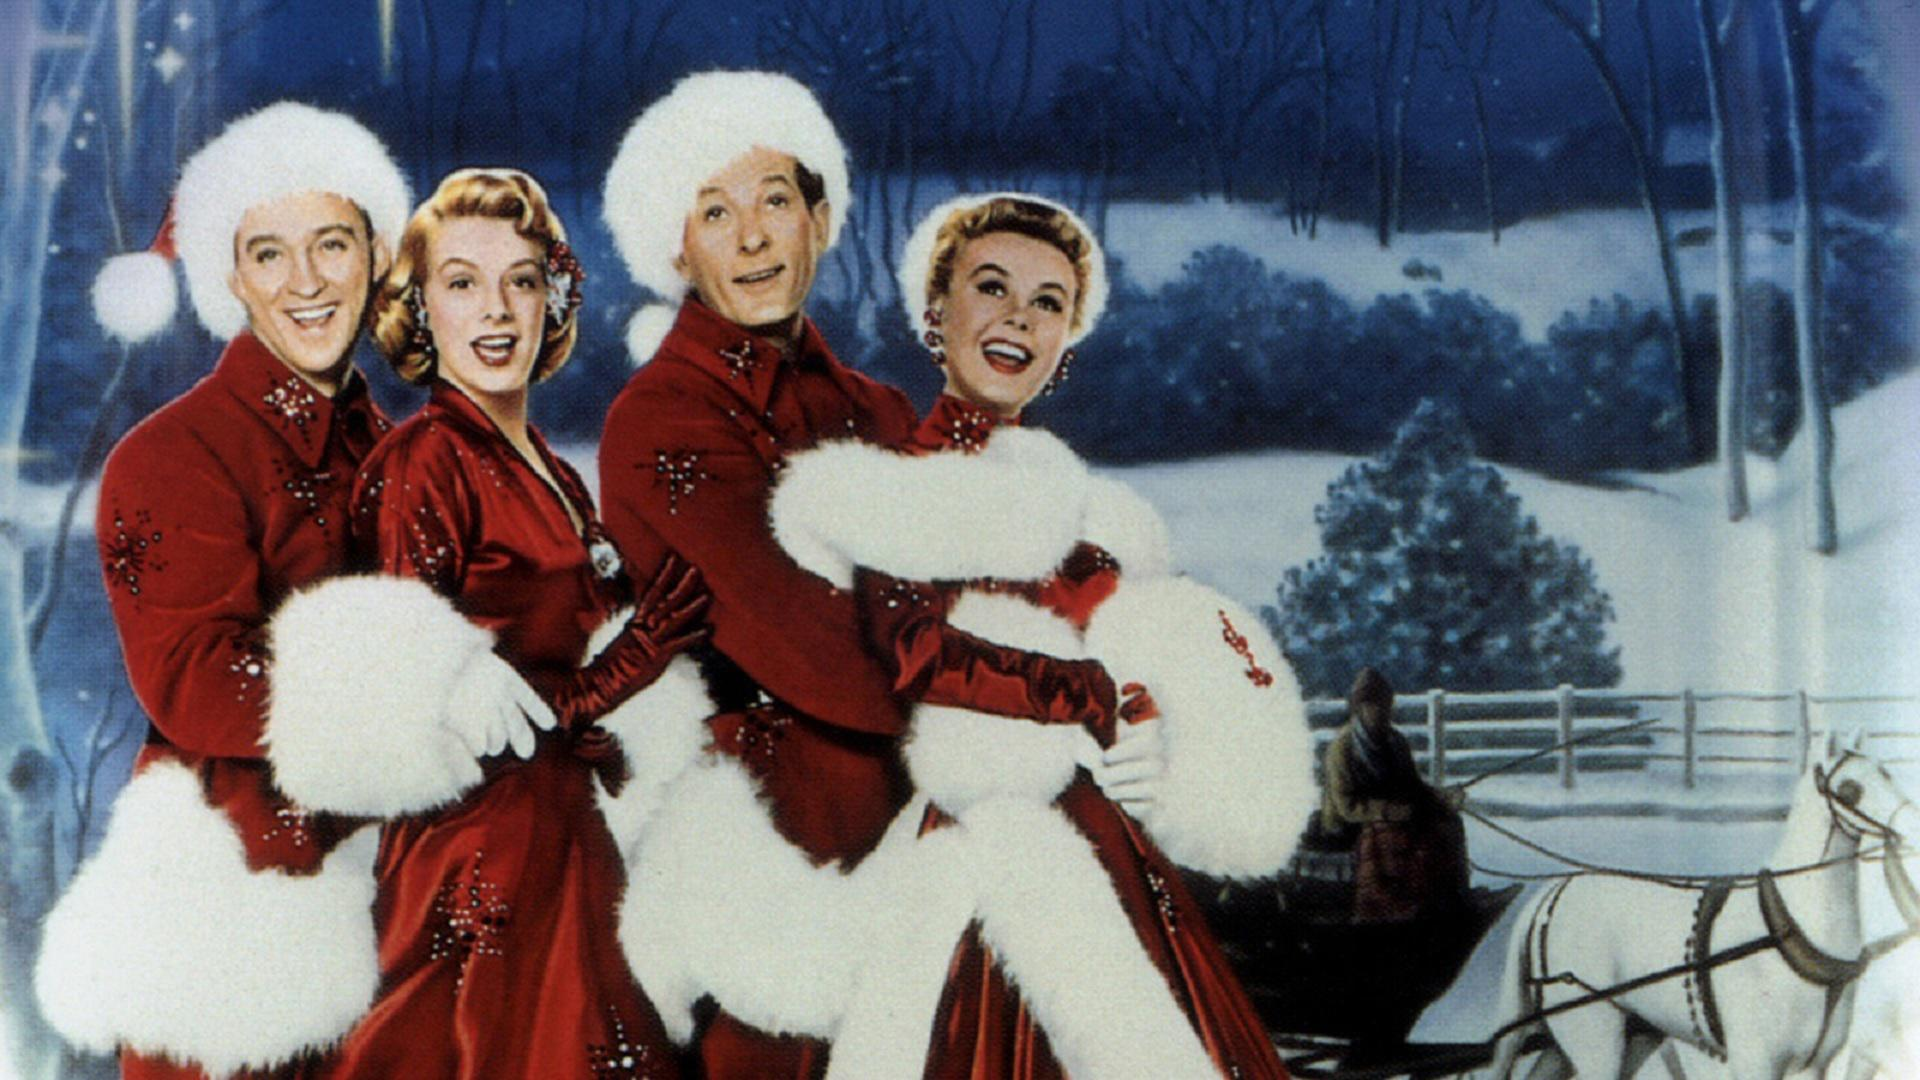 white christmas facts about the film you probably - When Did White Christmas Come Out